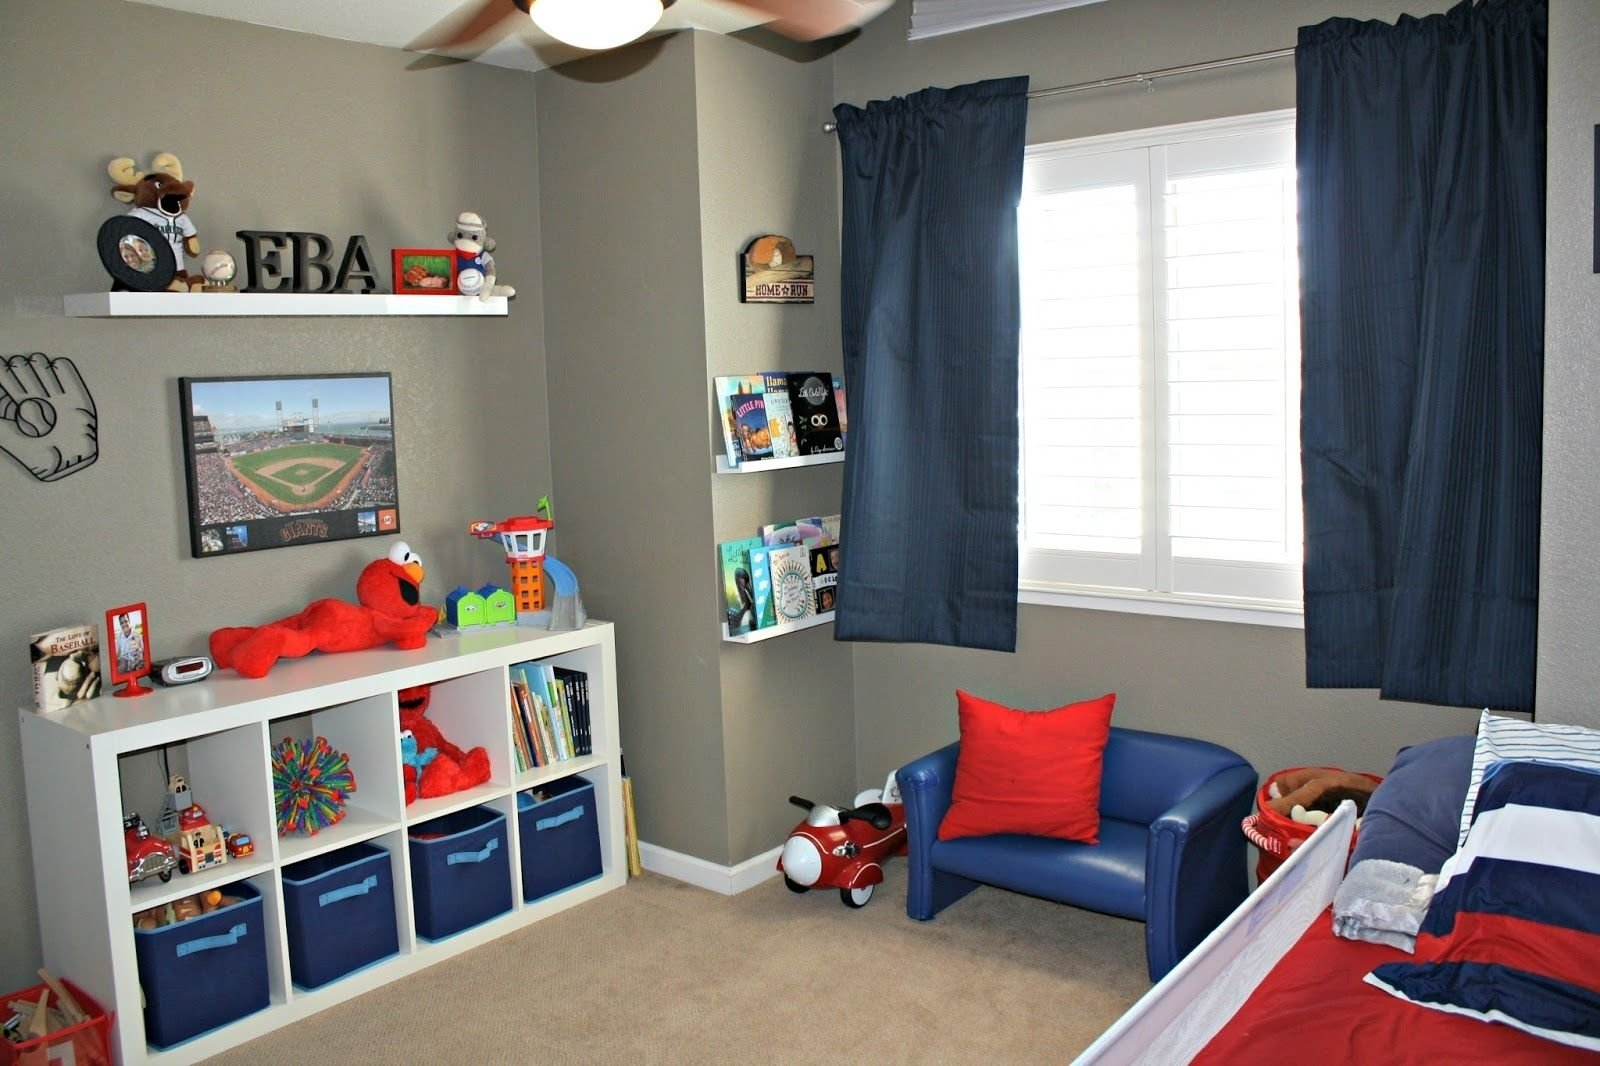 10 Nice Toddler Boy Room Decorating Ideas this doesnt even begin to scrape the surface of how awesome ljs